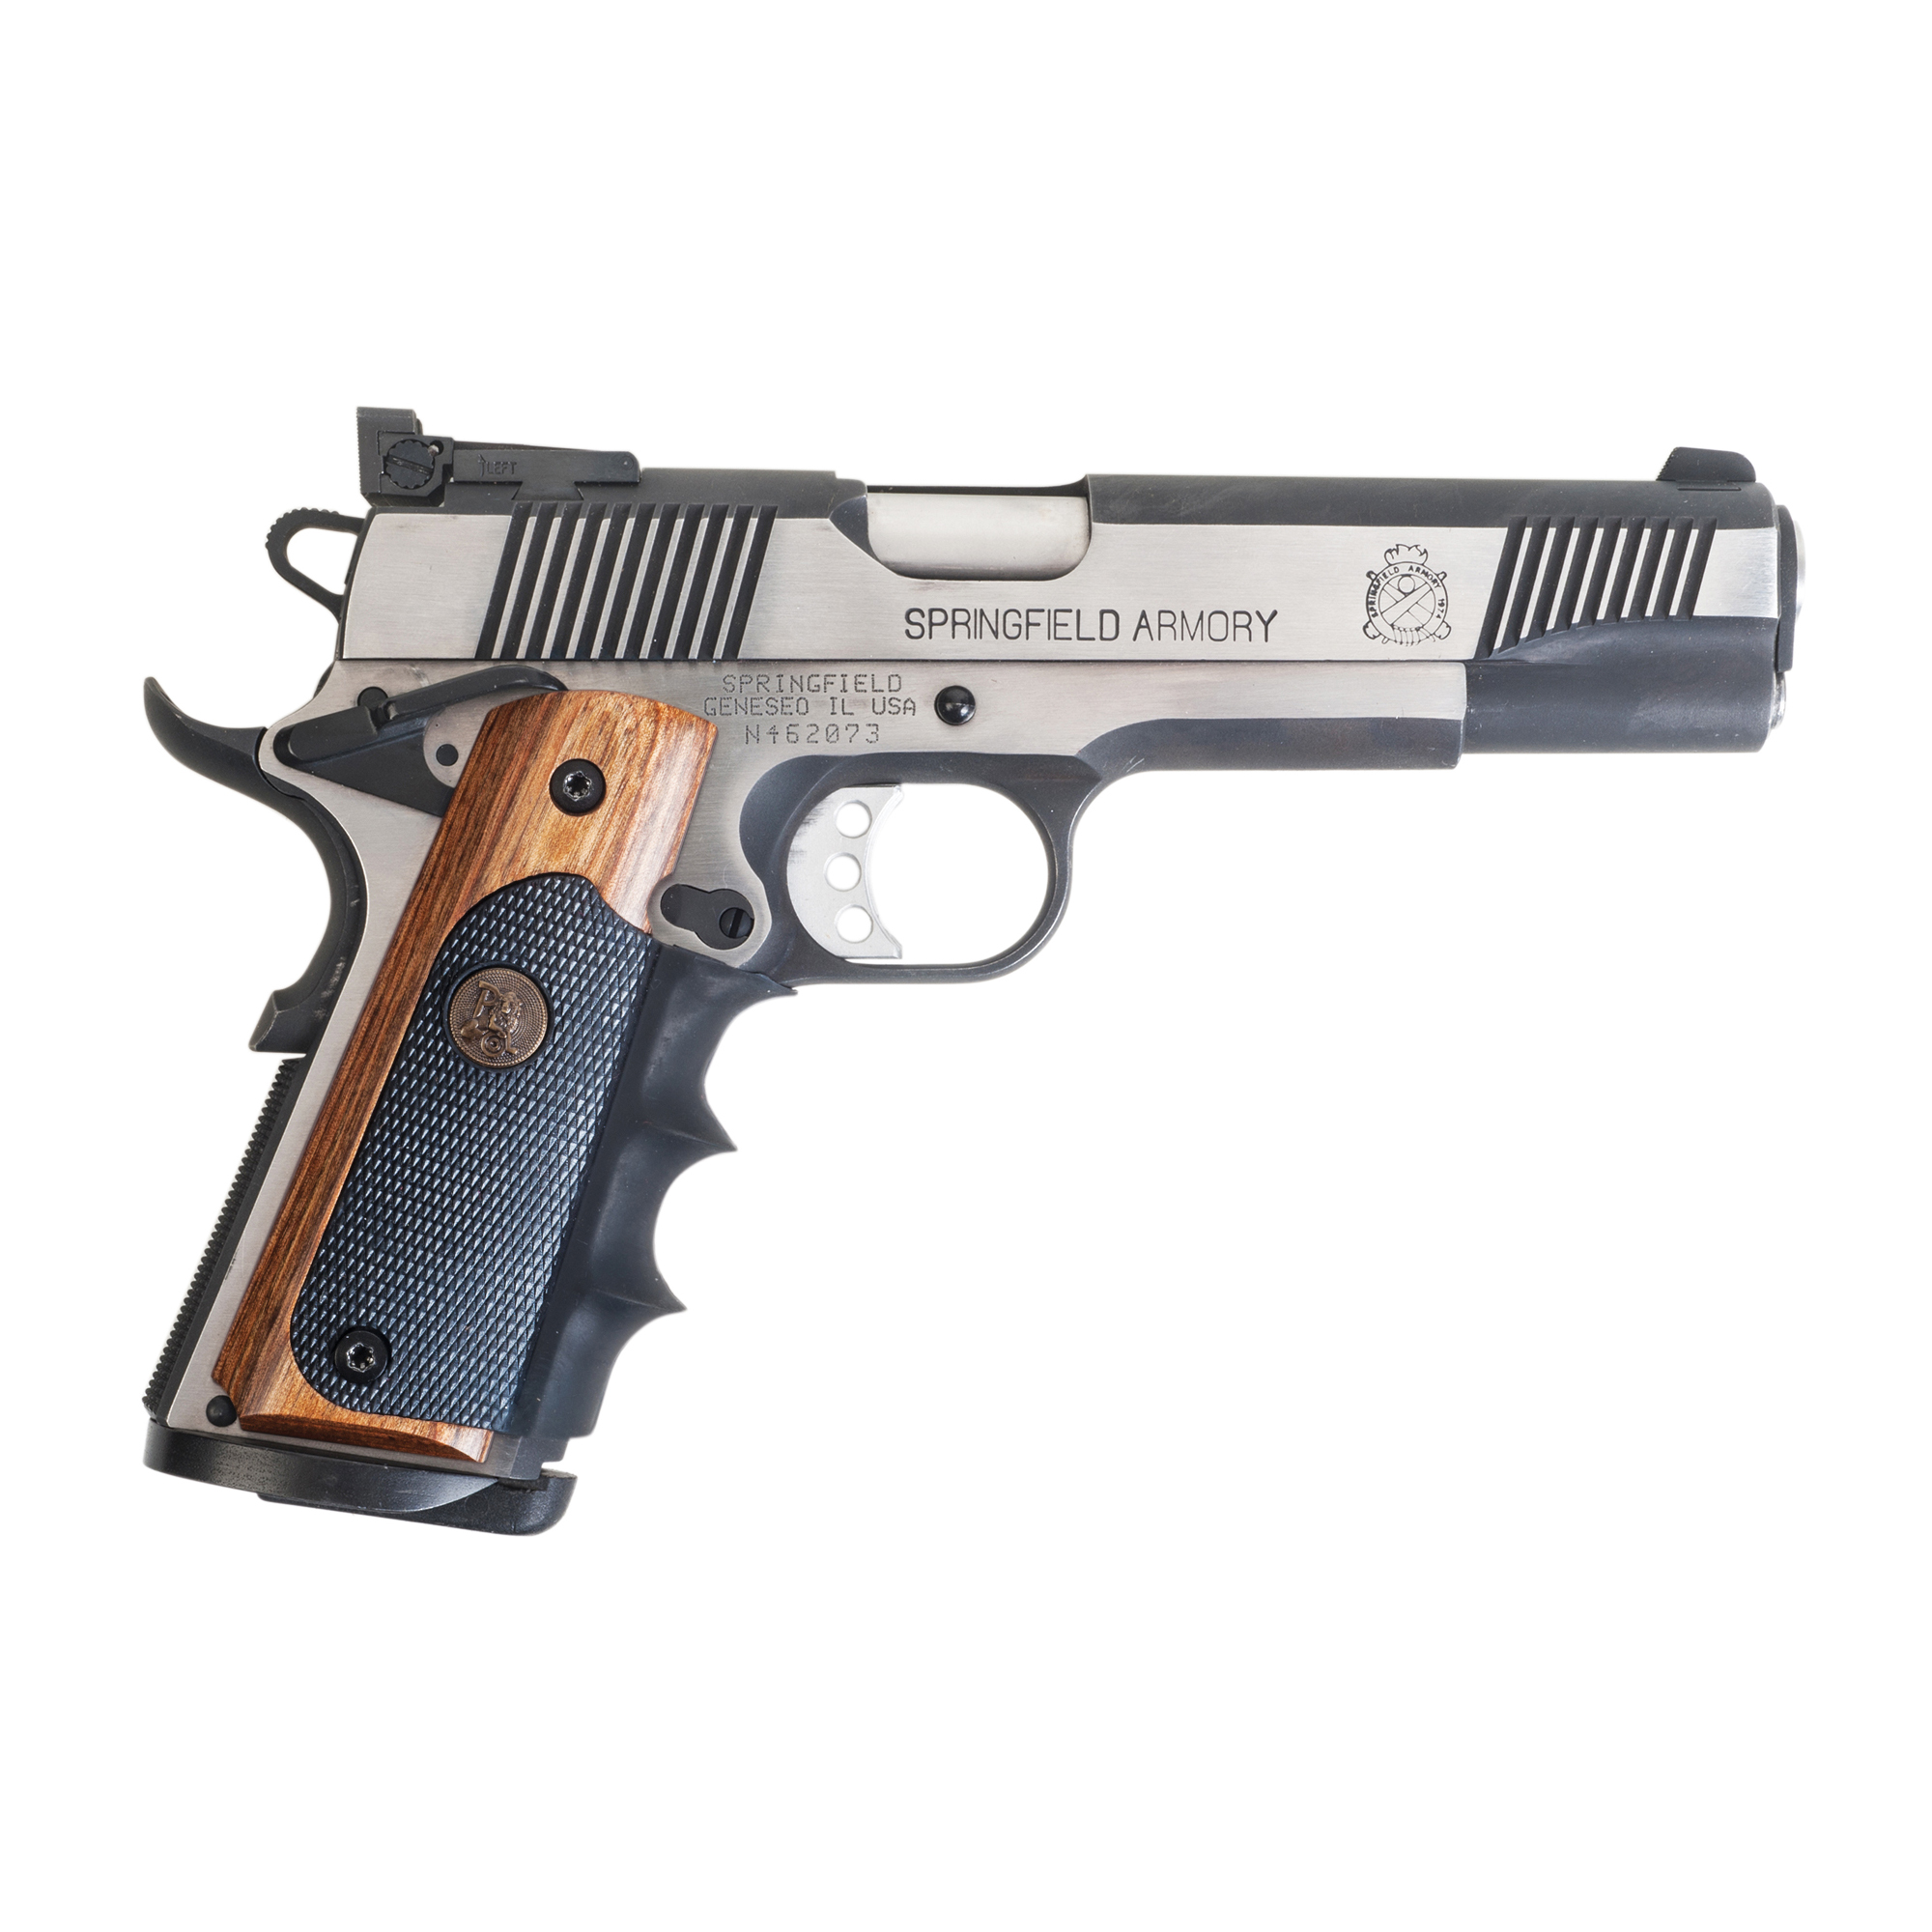 """With proven recoil absorbing rubber panels"""" comfortable finger grooves and attractive wood trim"""" Pachmayr's popular American Legend Grips now offer a range of colors. Choose Rosewood"""" Charcoal Silvertone"""" or Heritage Walnut laminate. Each semi auto grip features the popular American Legend wraparound design with relief cuts for ambidextrous safeties and mainspring housing pin cut-out."""